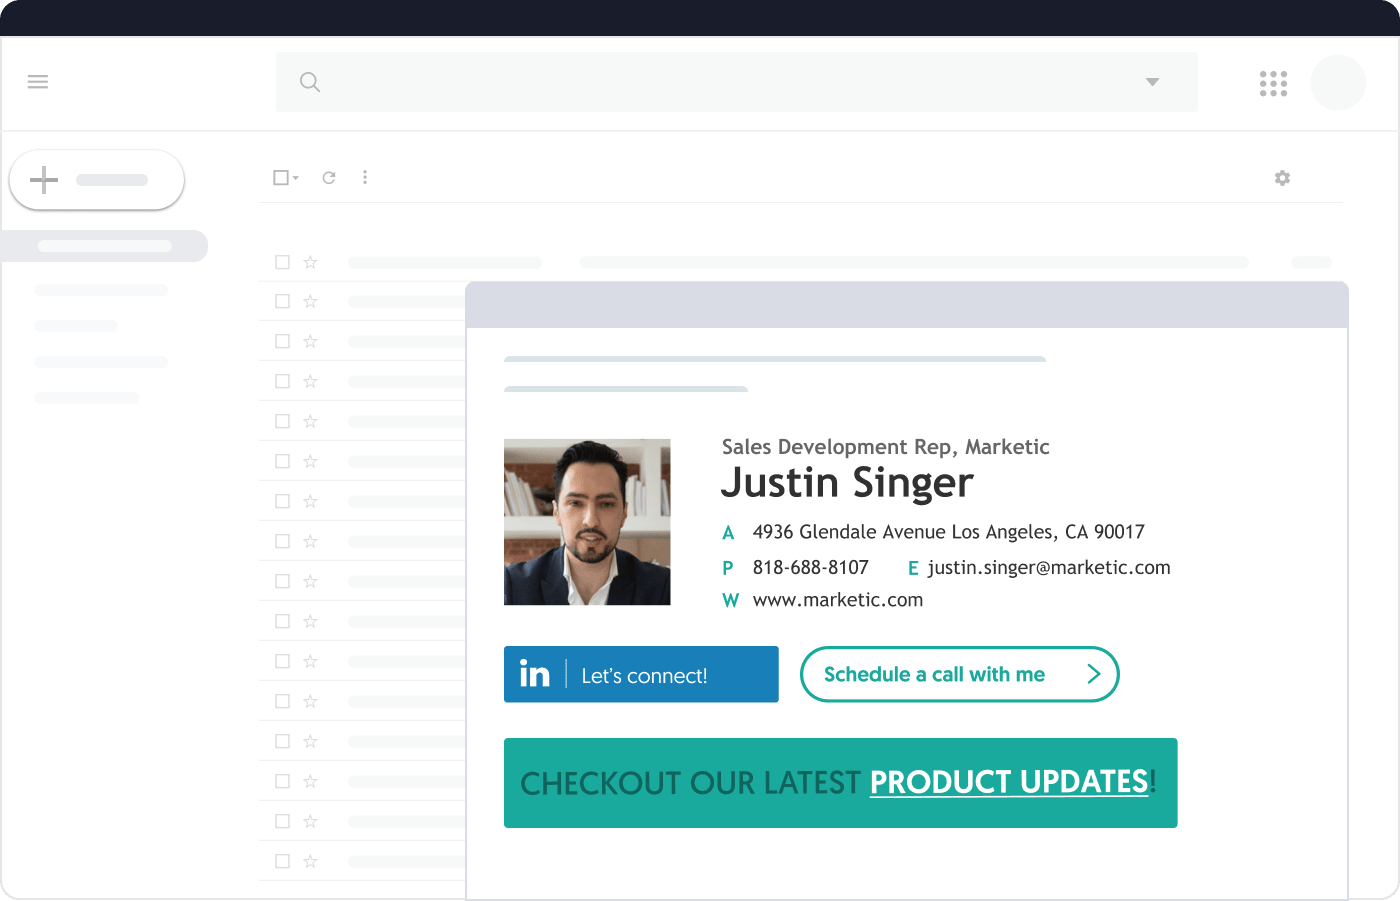 manage global email signature for sales teams